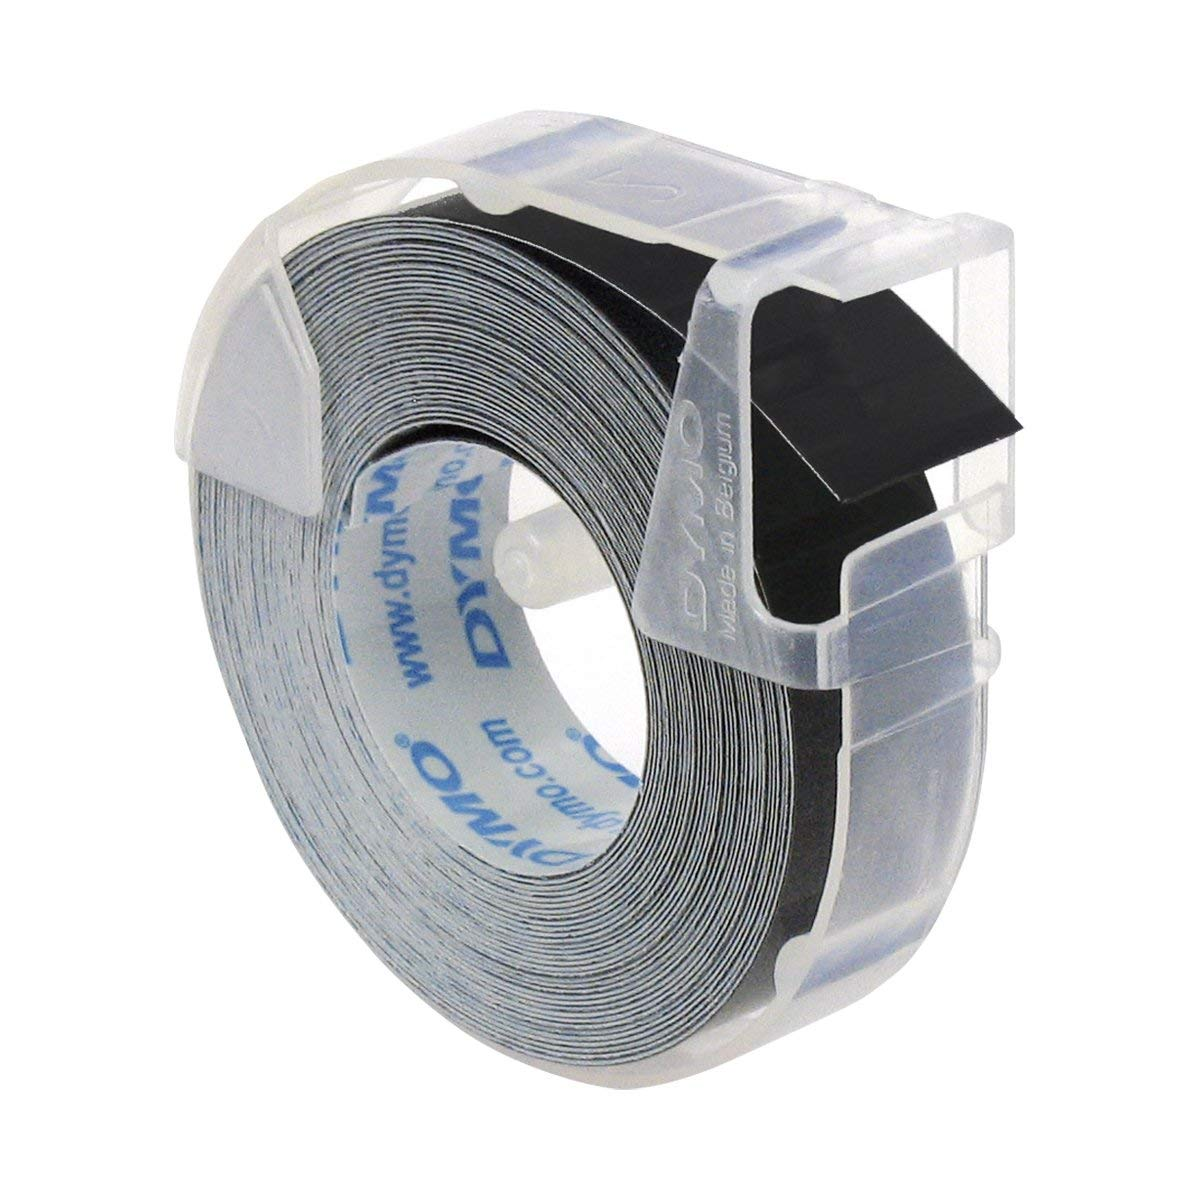 Dymo S0898130 (524709) 3D Embossing Tape 9mm x 3m - White On Black (pc)